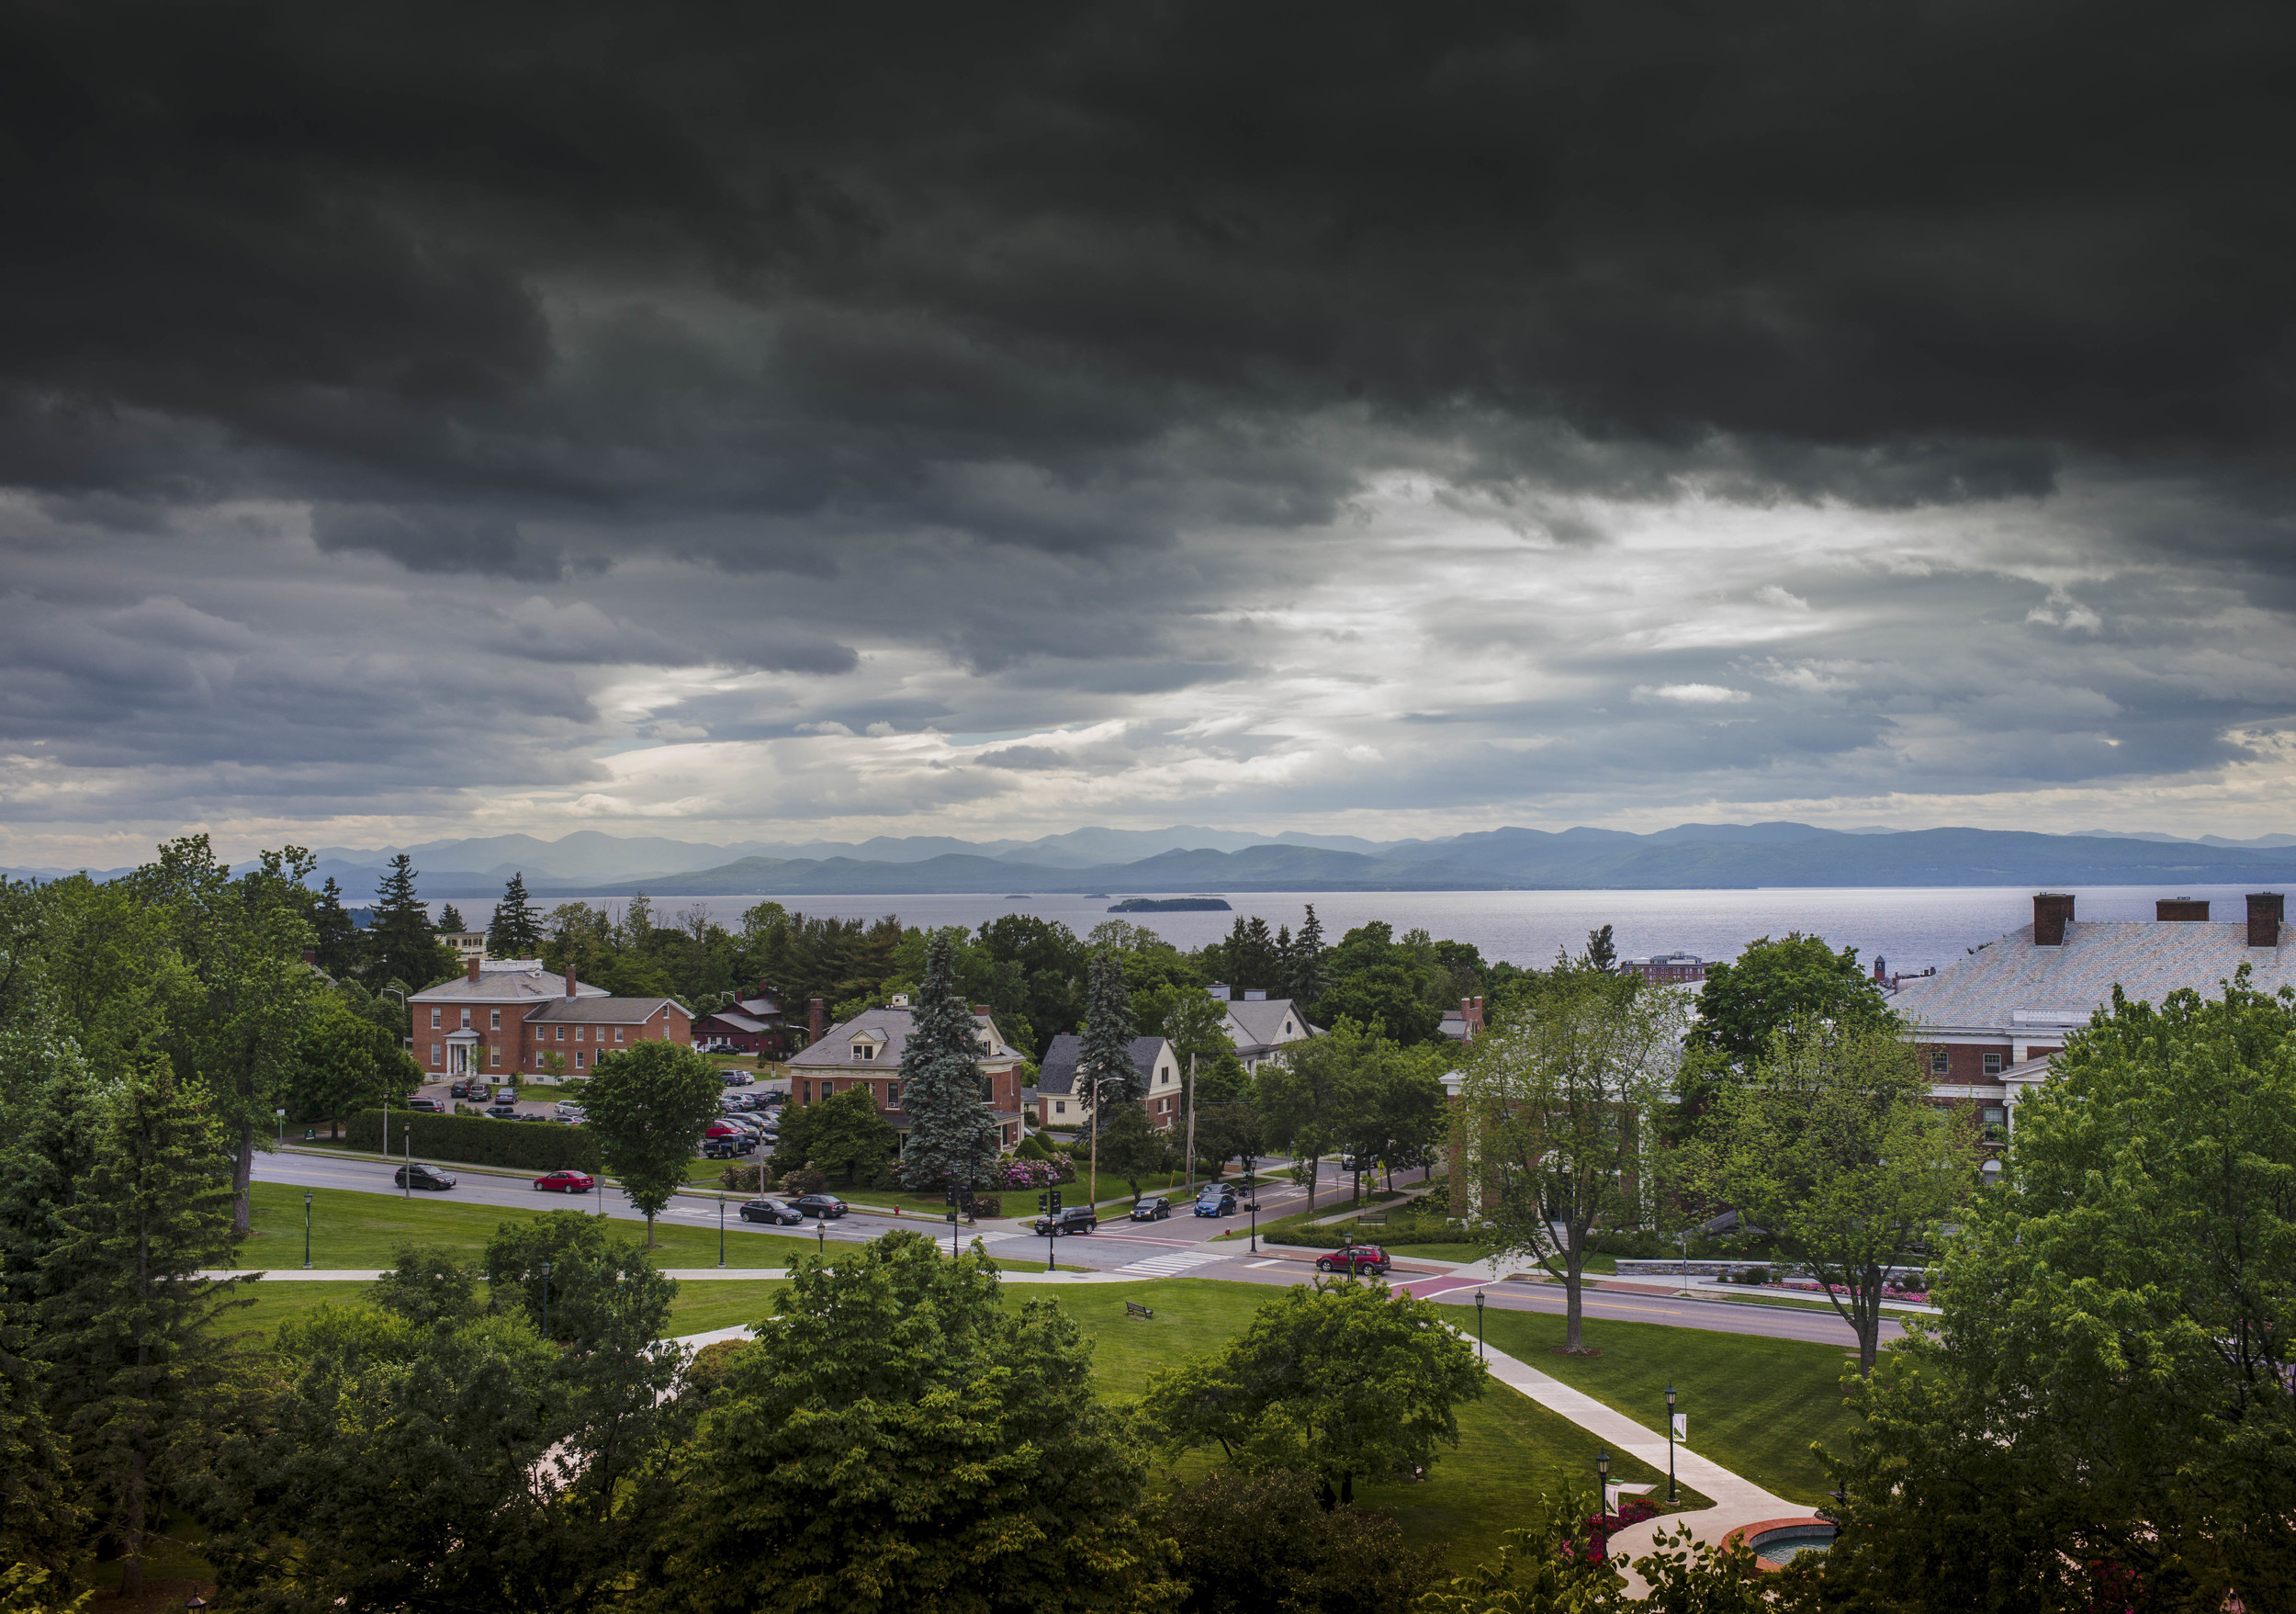 University of Vermont, Burlington, Vermont  Leica M, 35mm Summicron, f/4.8, 1/1000s, ISO 320